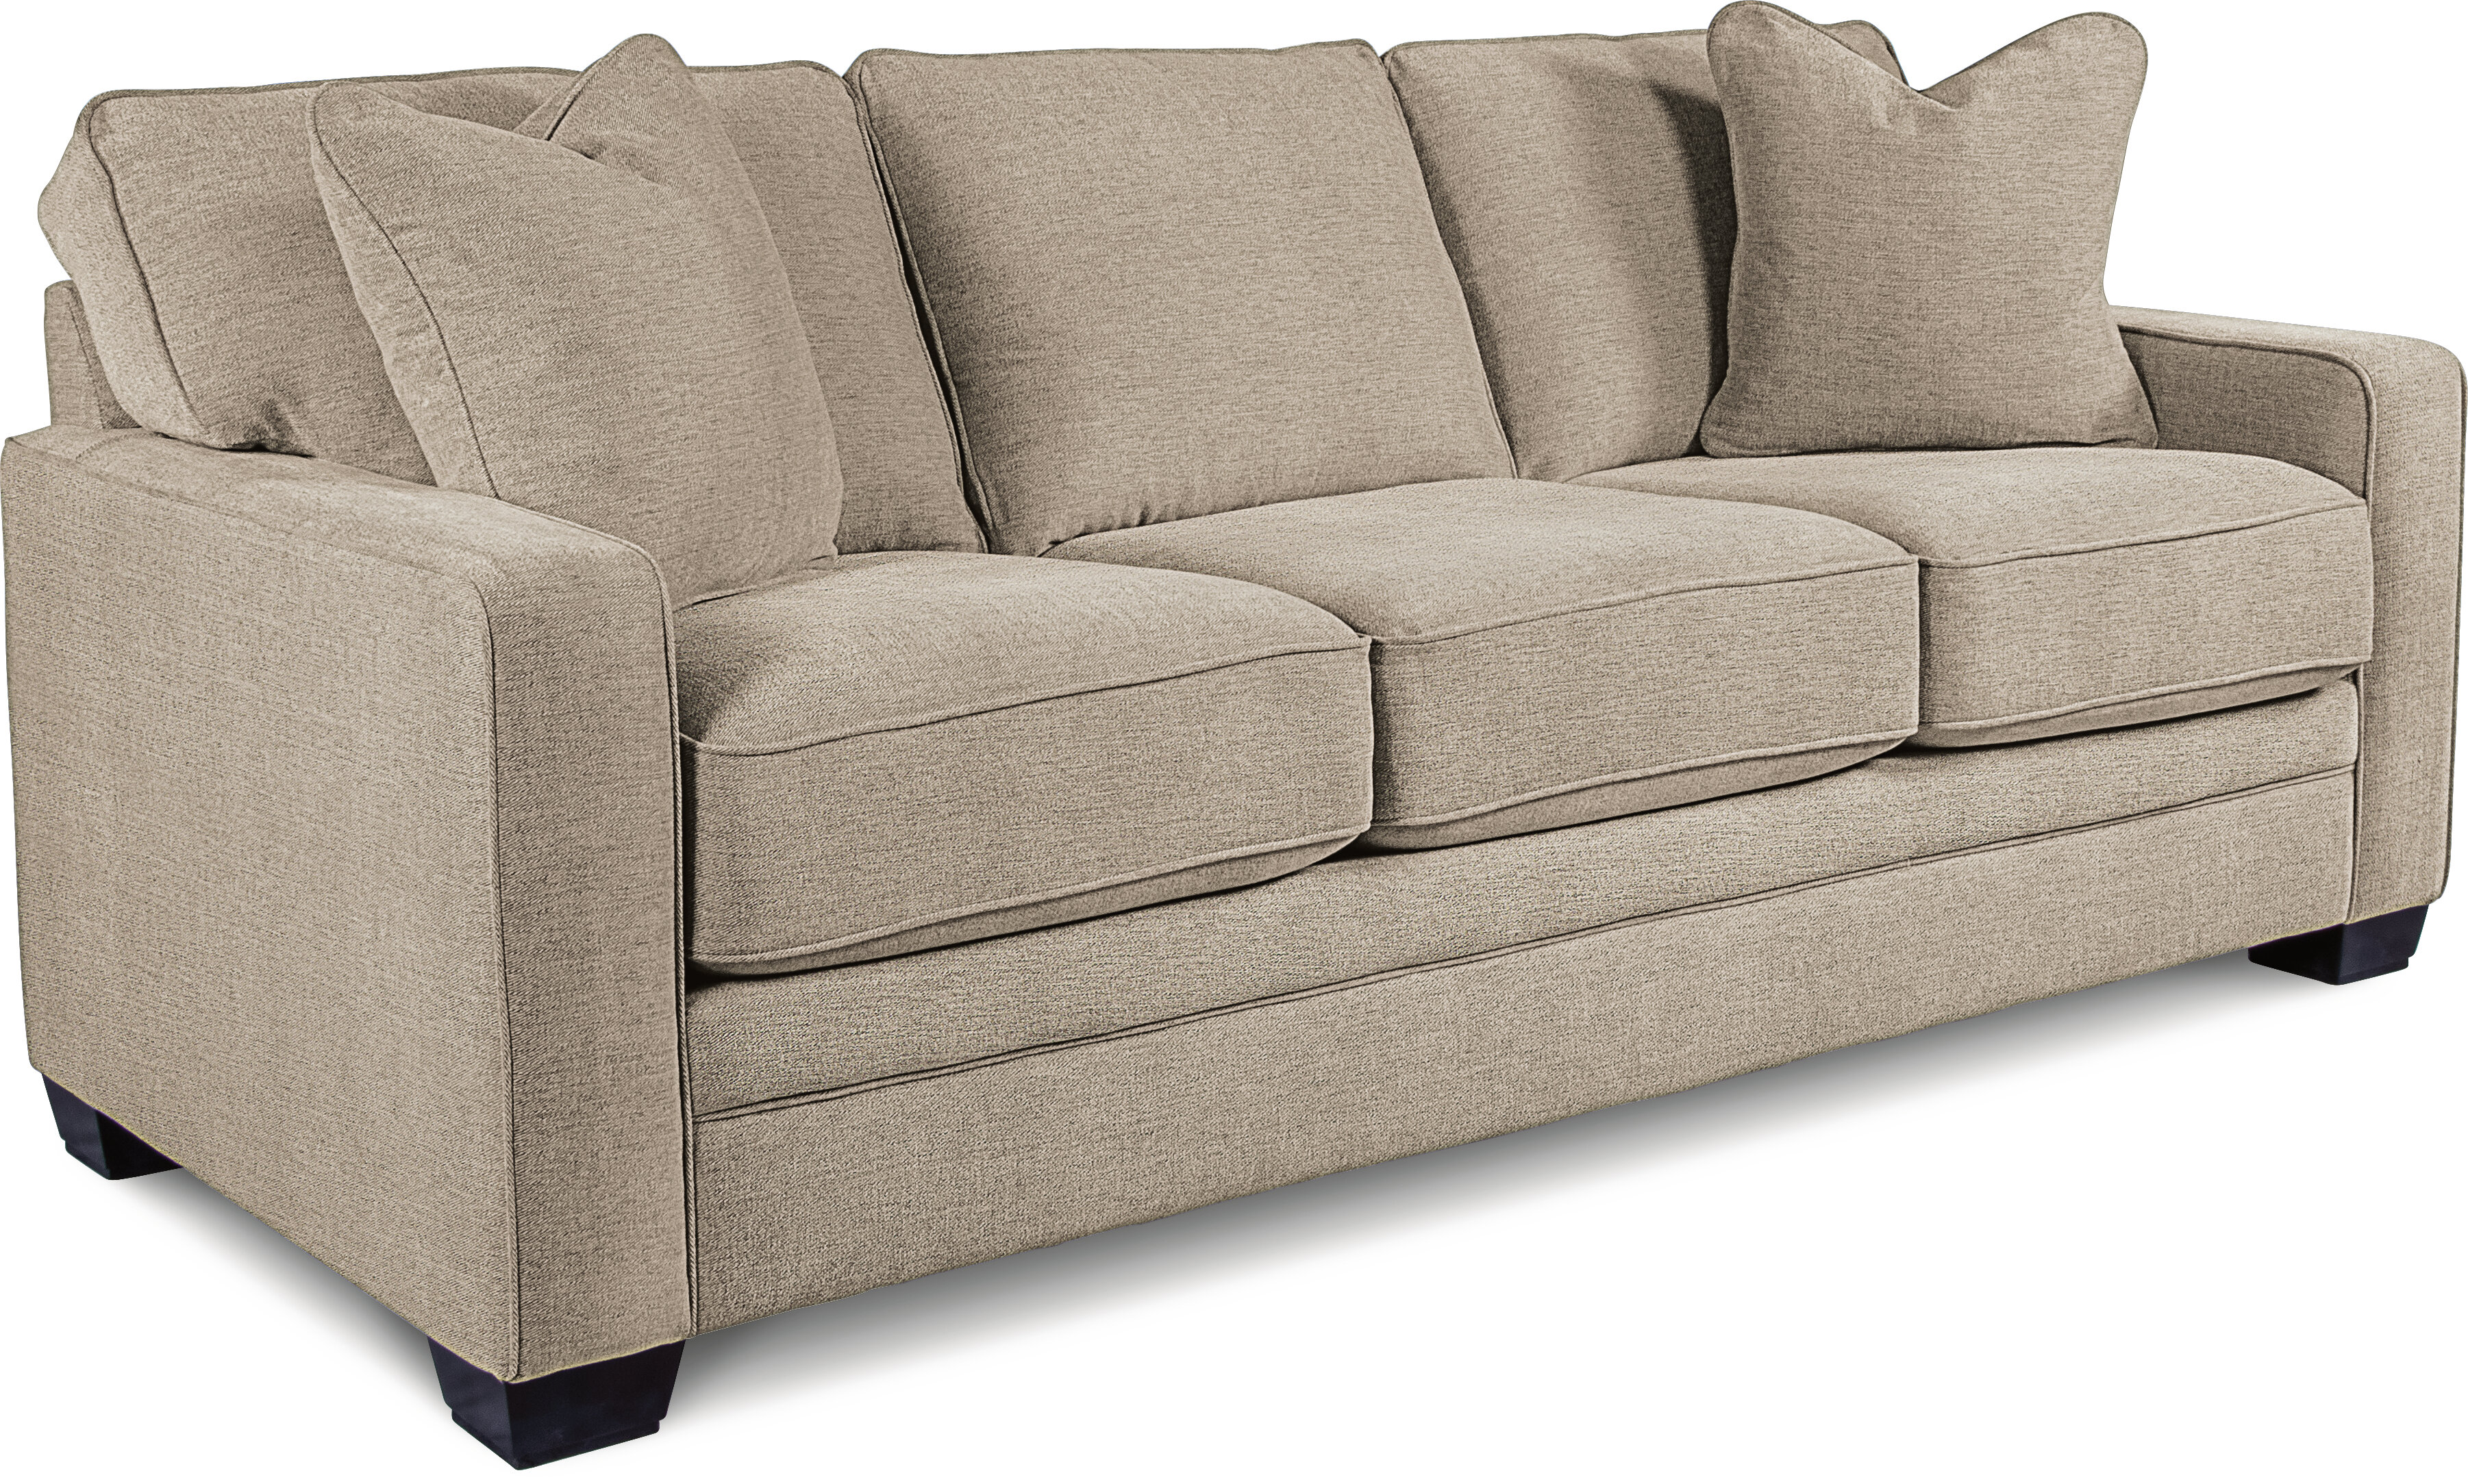 La-Z-Boy Meyer Premier Sofa & Reviews | Wayfair